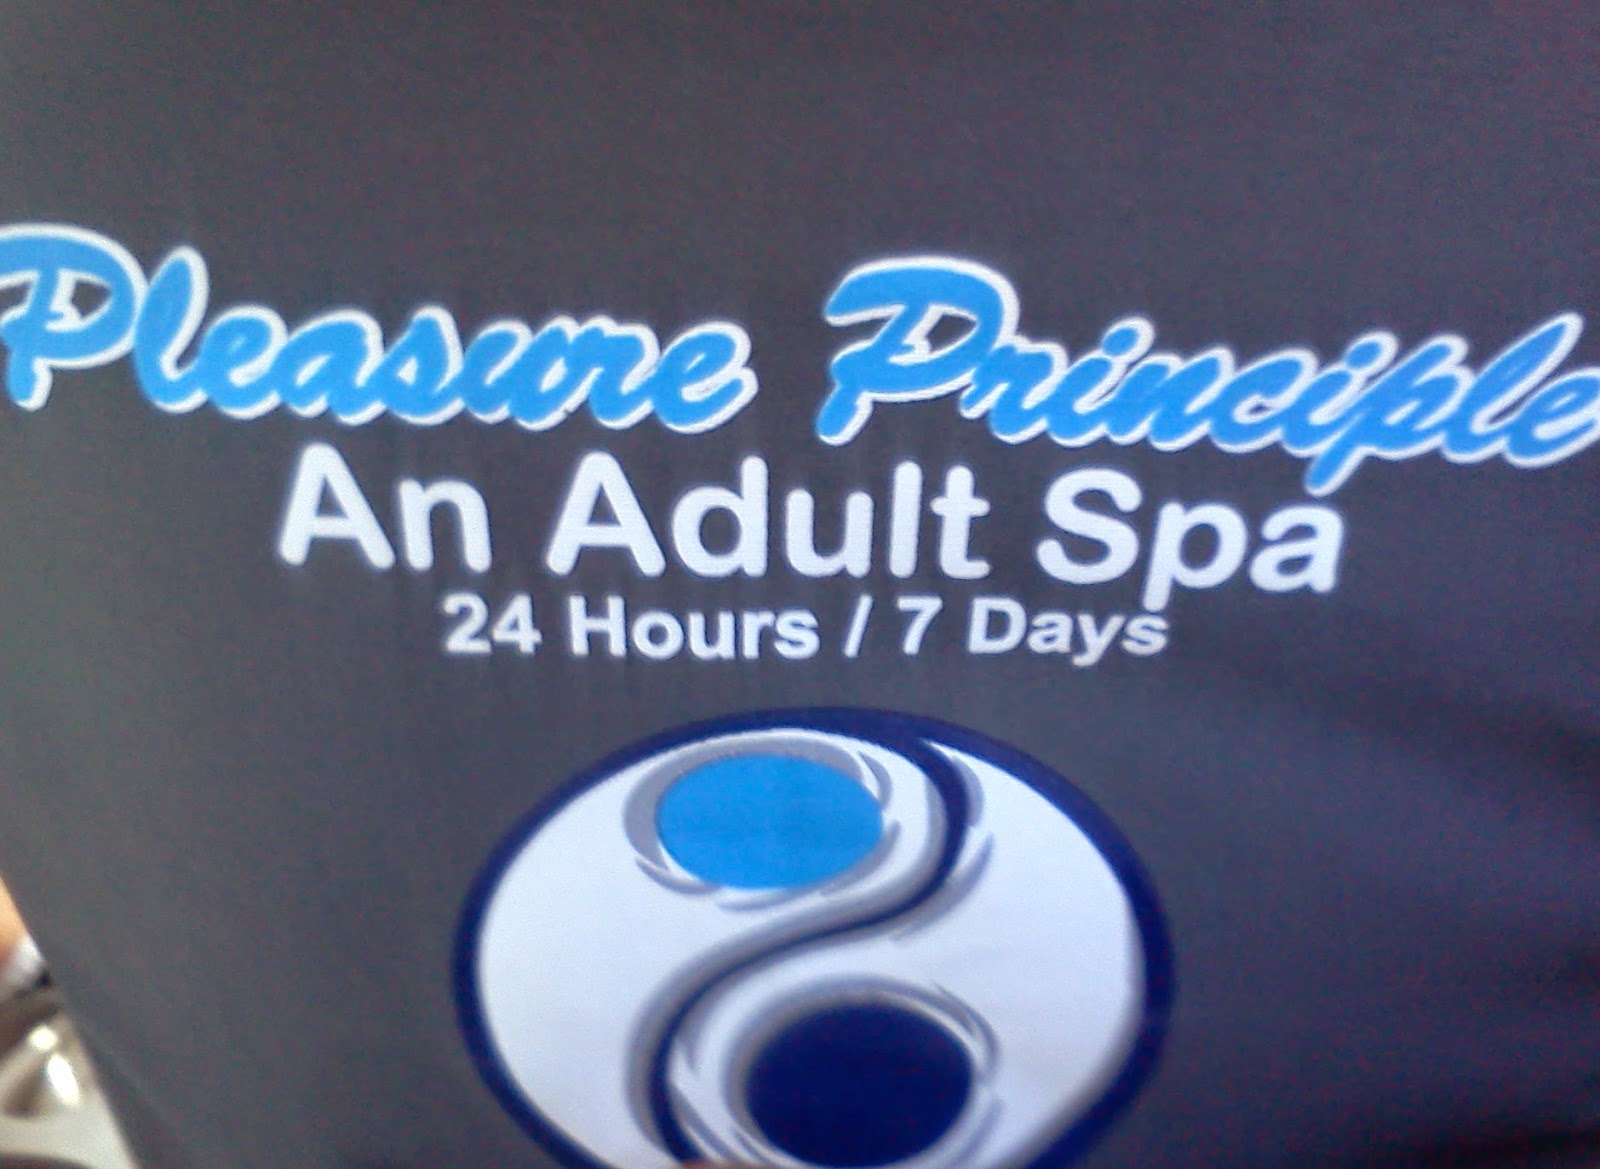 Pleasure Principle Adult Spa Ad in back of taxi